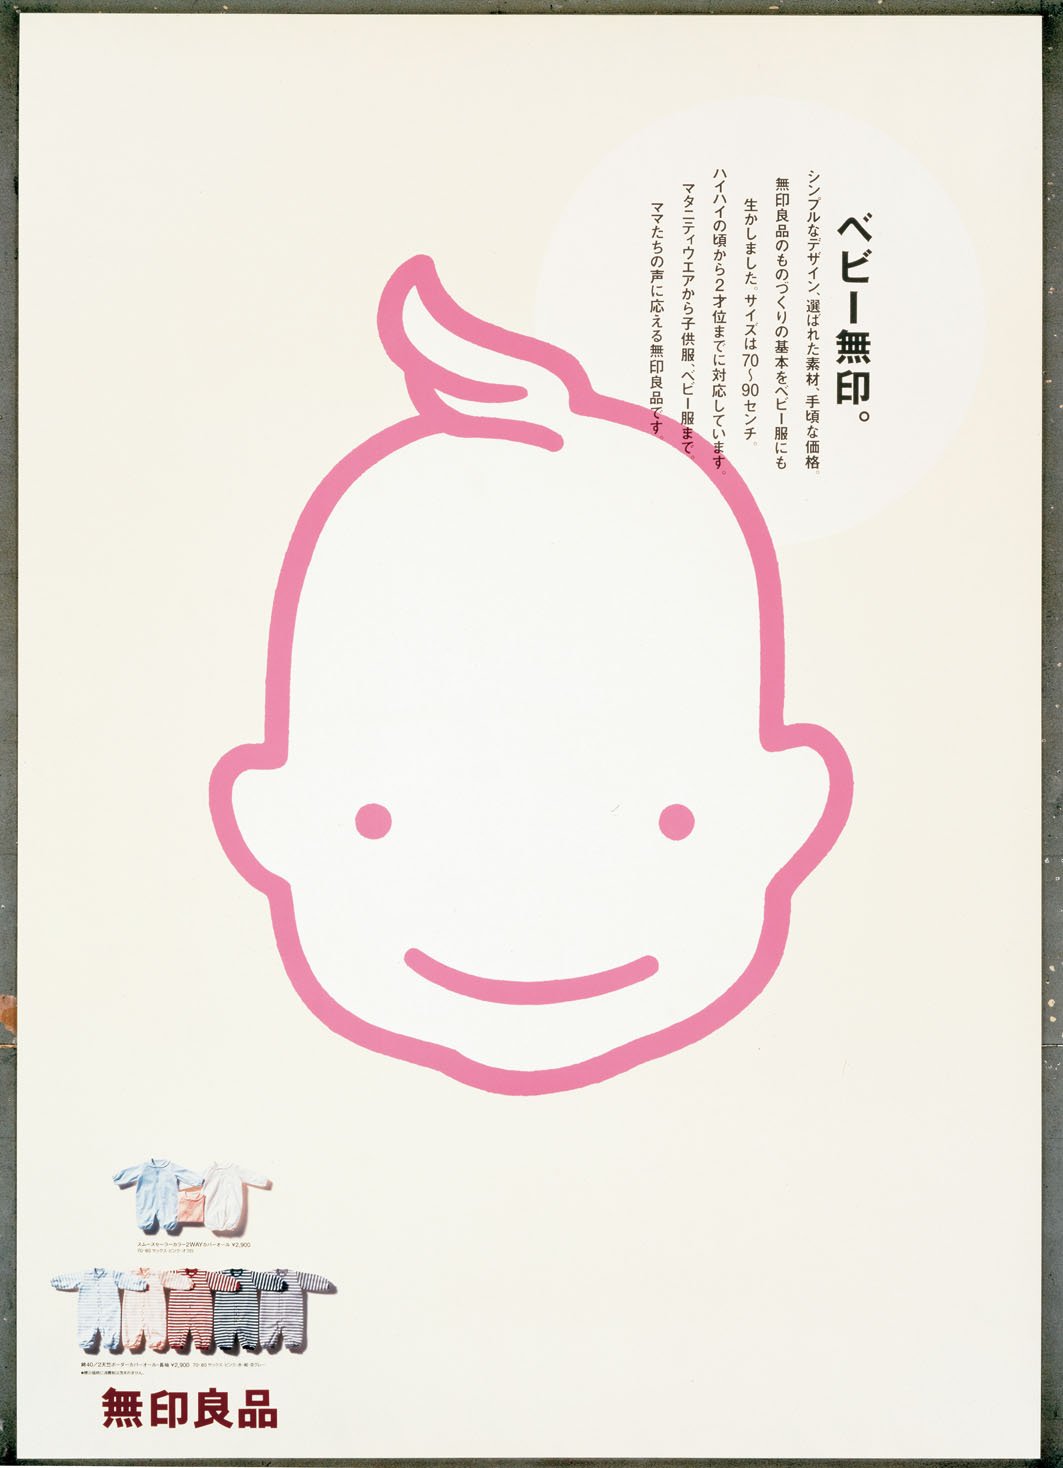 Baby MUJI, 1999, ©Ikko Tanaka / licensed by DNPartcom. The poster promotes MUJI's first line of baby clothing